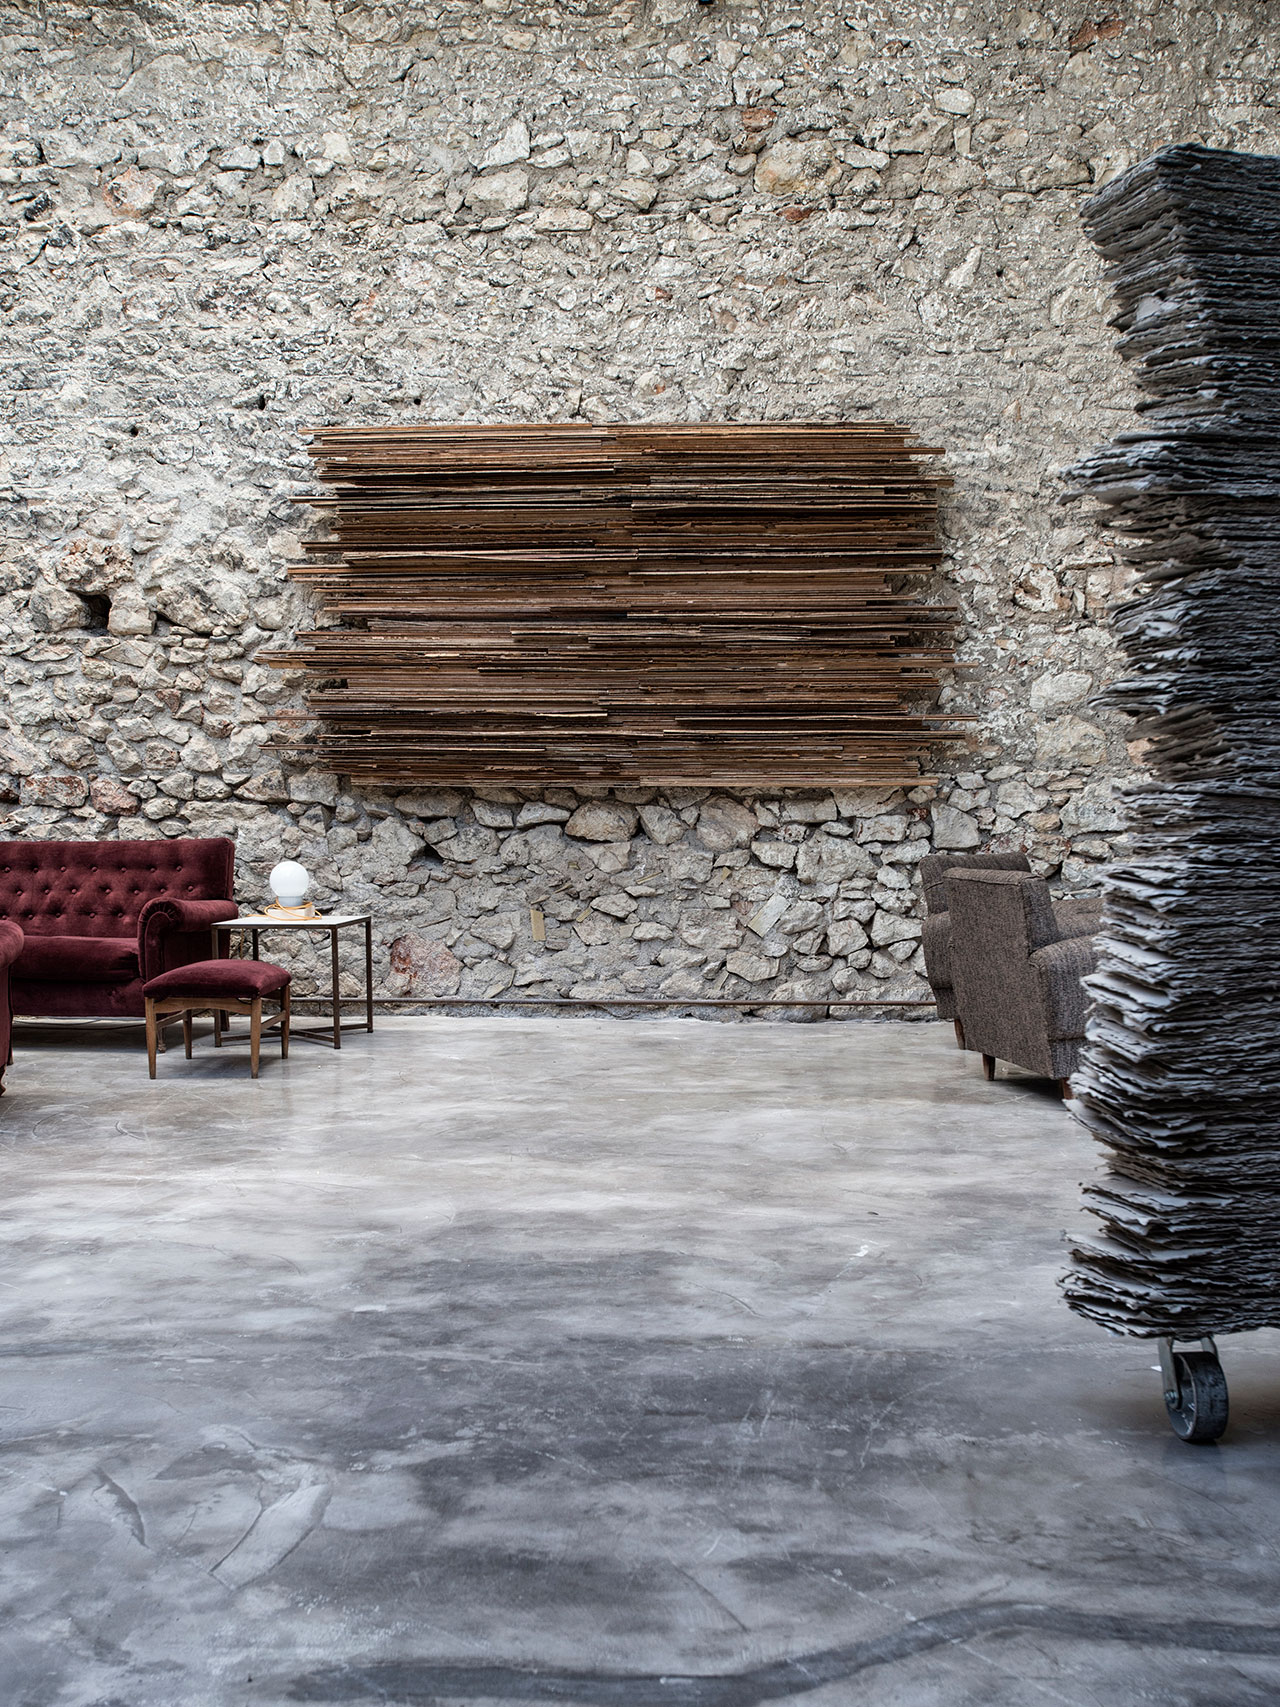 Kornelios Grammenos, Sarmata, 2008, plywood, 245x160cm. Installation view. Pirée, Piraeus, Greece. Styling by Costas Voyatzis, photo by Kosmas Koumianos for Yatzer.com, © Pirée, 2016.